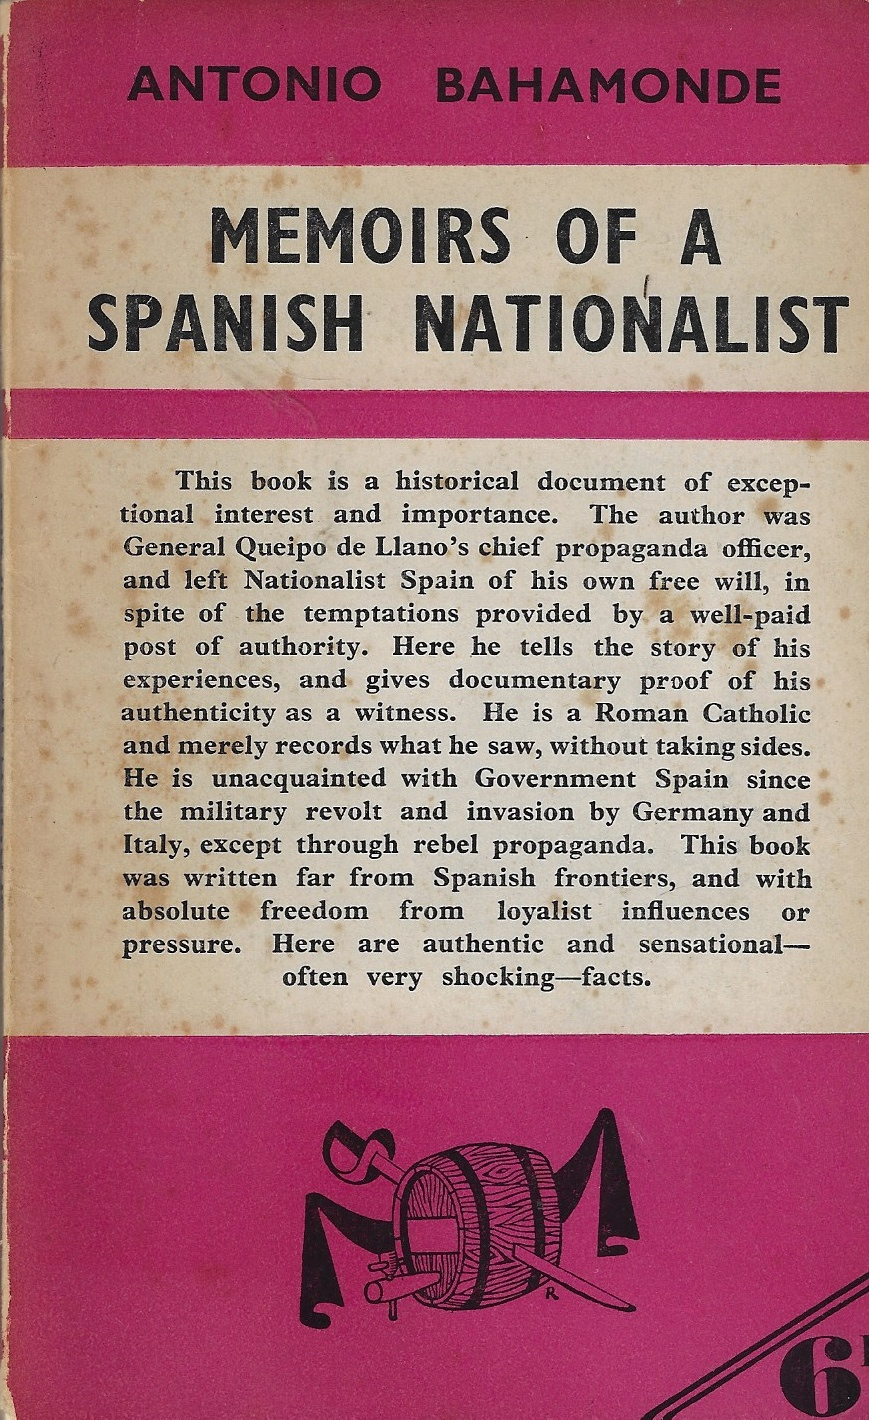 Image for Memoirs of a Spanish nationalist.